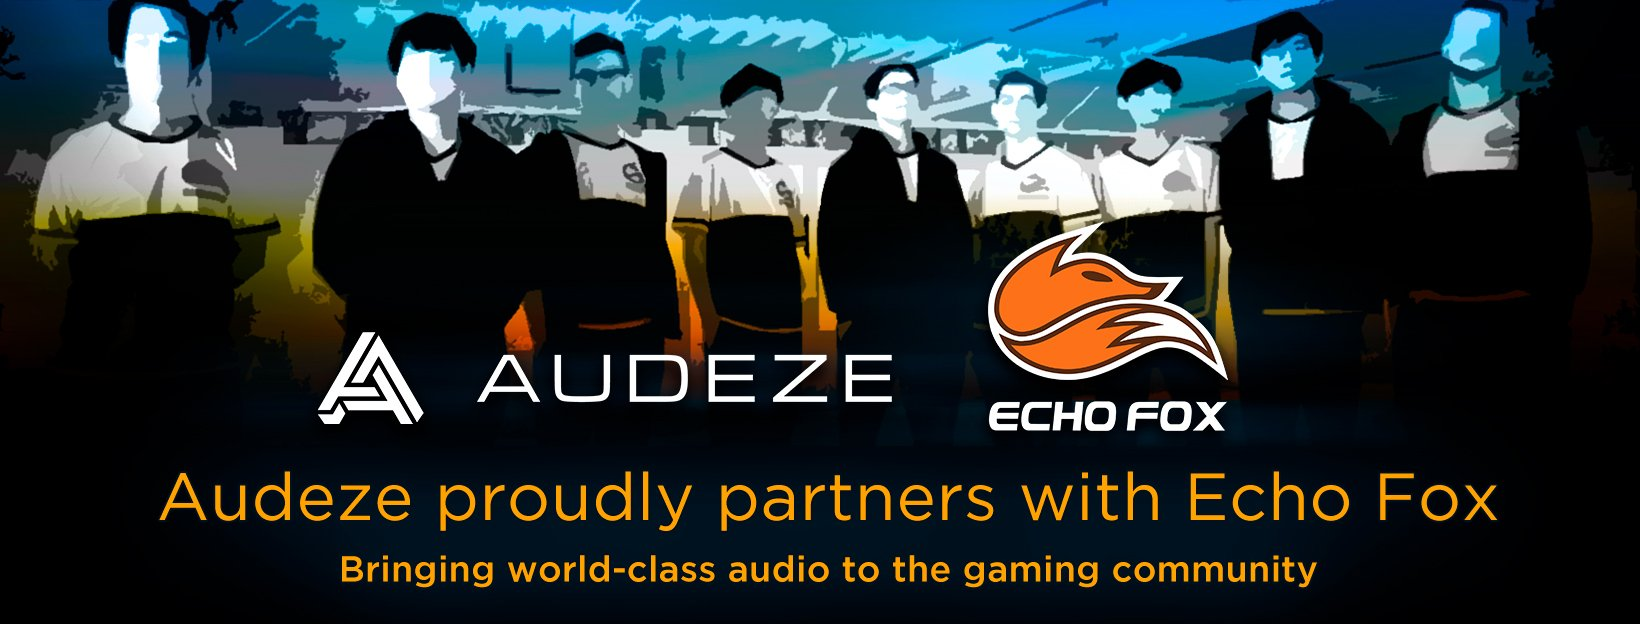 Echo Fox has joined the party!